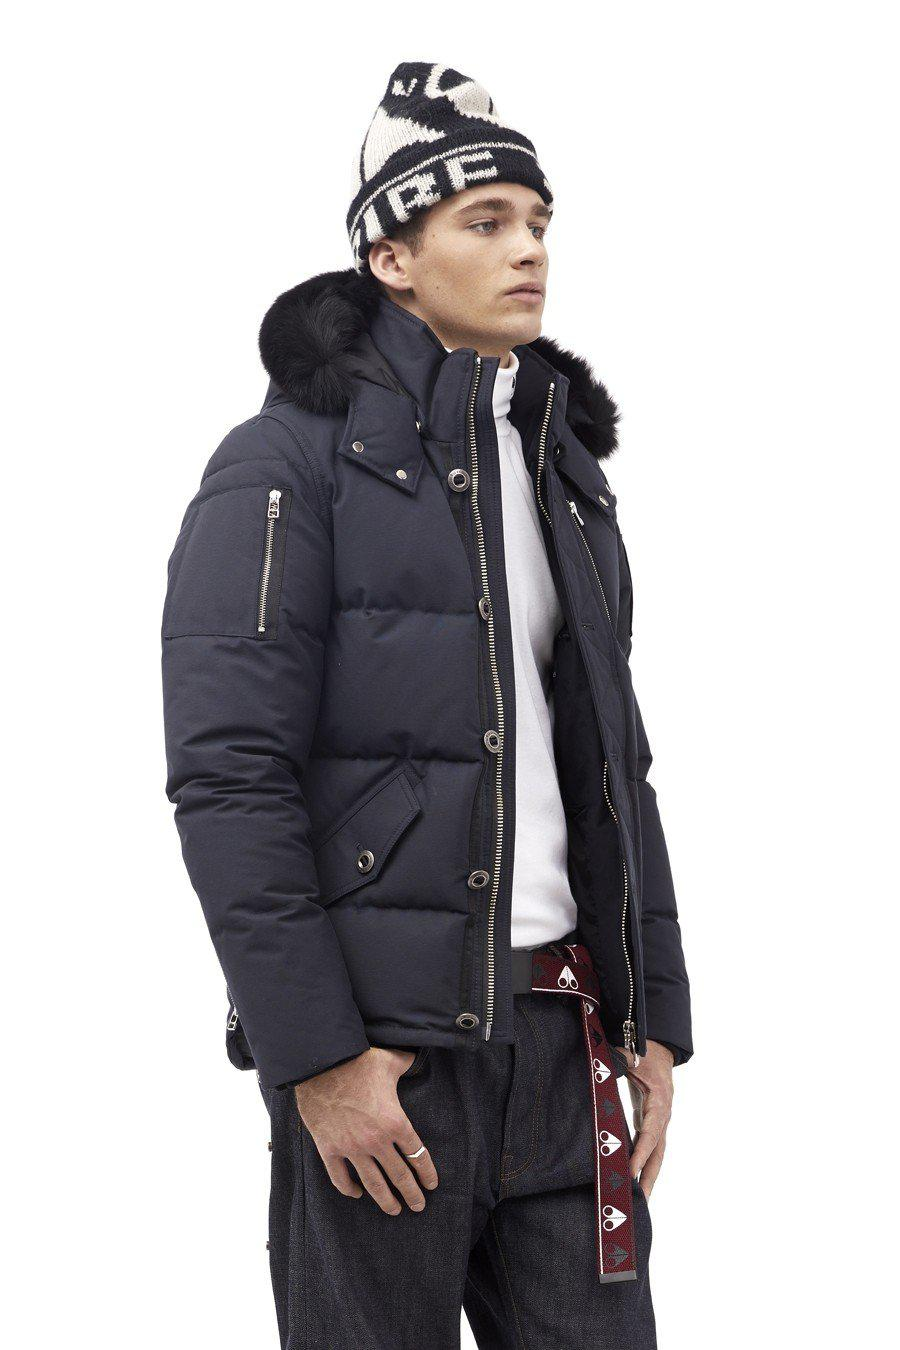 Moose Knuckles 3Q Men Jacket-Jackets-Classic fashion CF13-S-Navy/Black fur-Classic fashion CF13